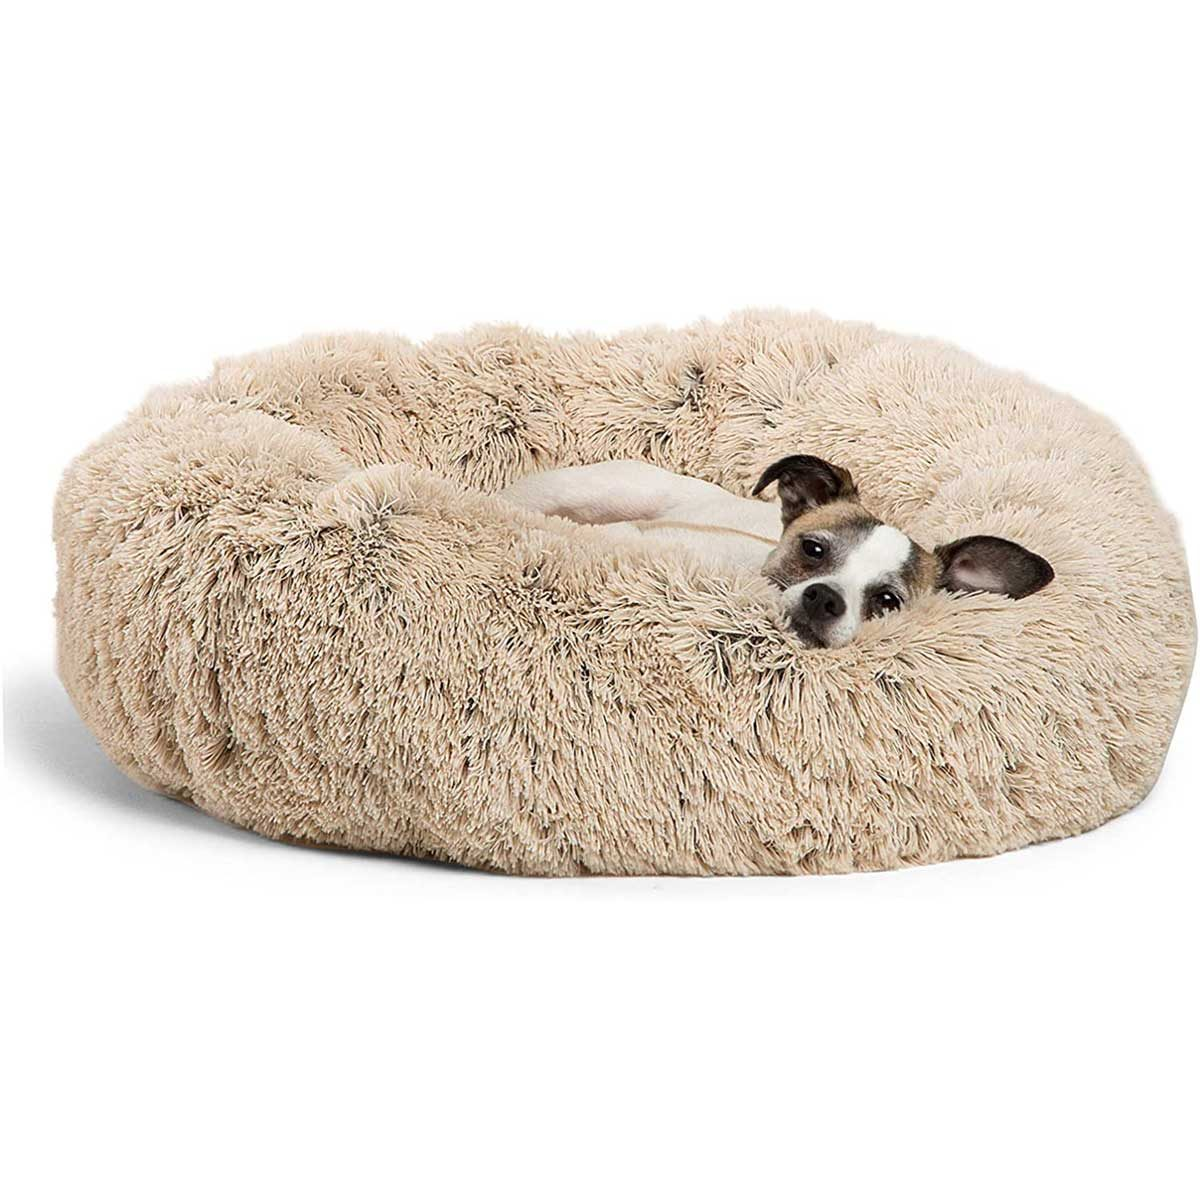 Dog Bed 810vp Q8qtl. Ac Sl1500